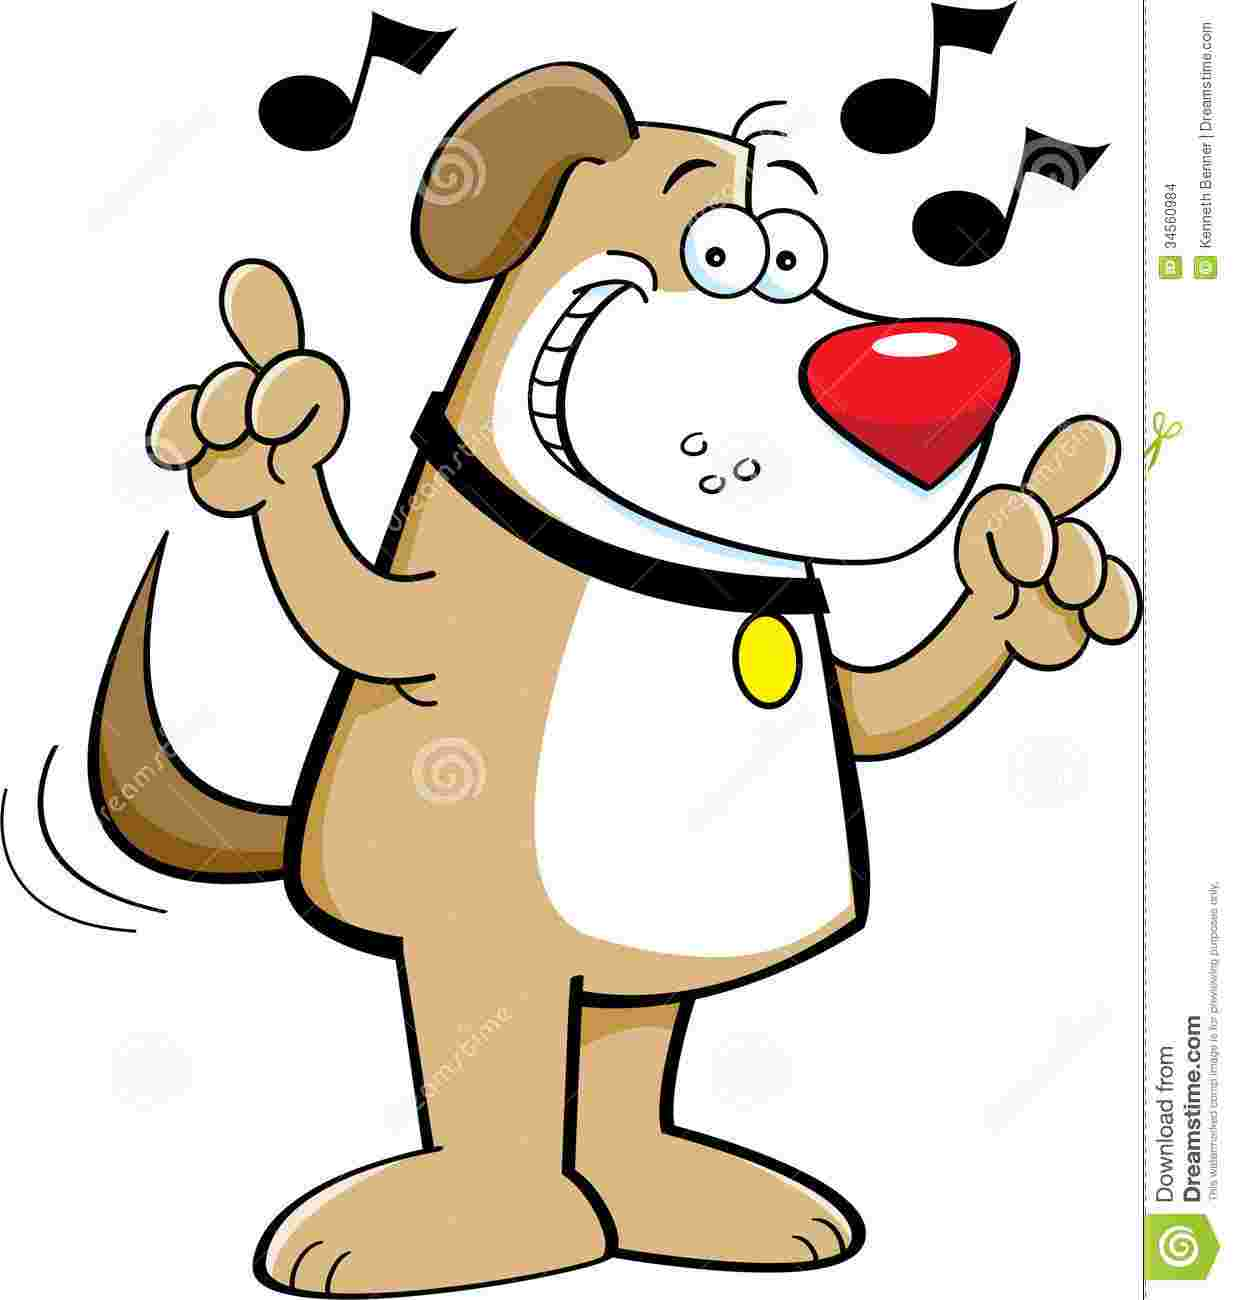 Cliparts Library: Singing Dog Clipart Pictures What Time Is.